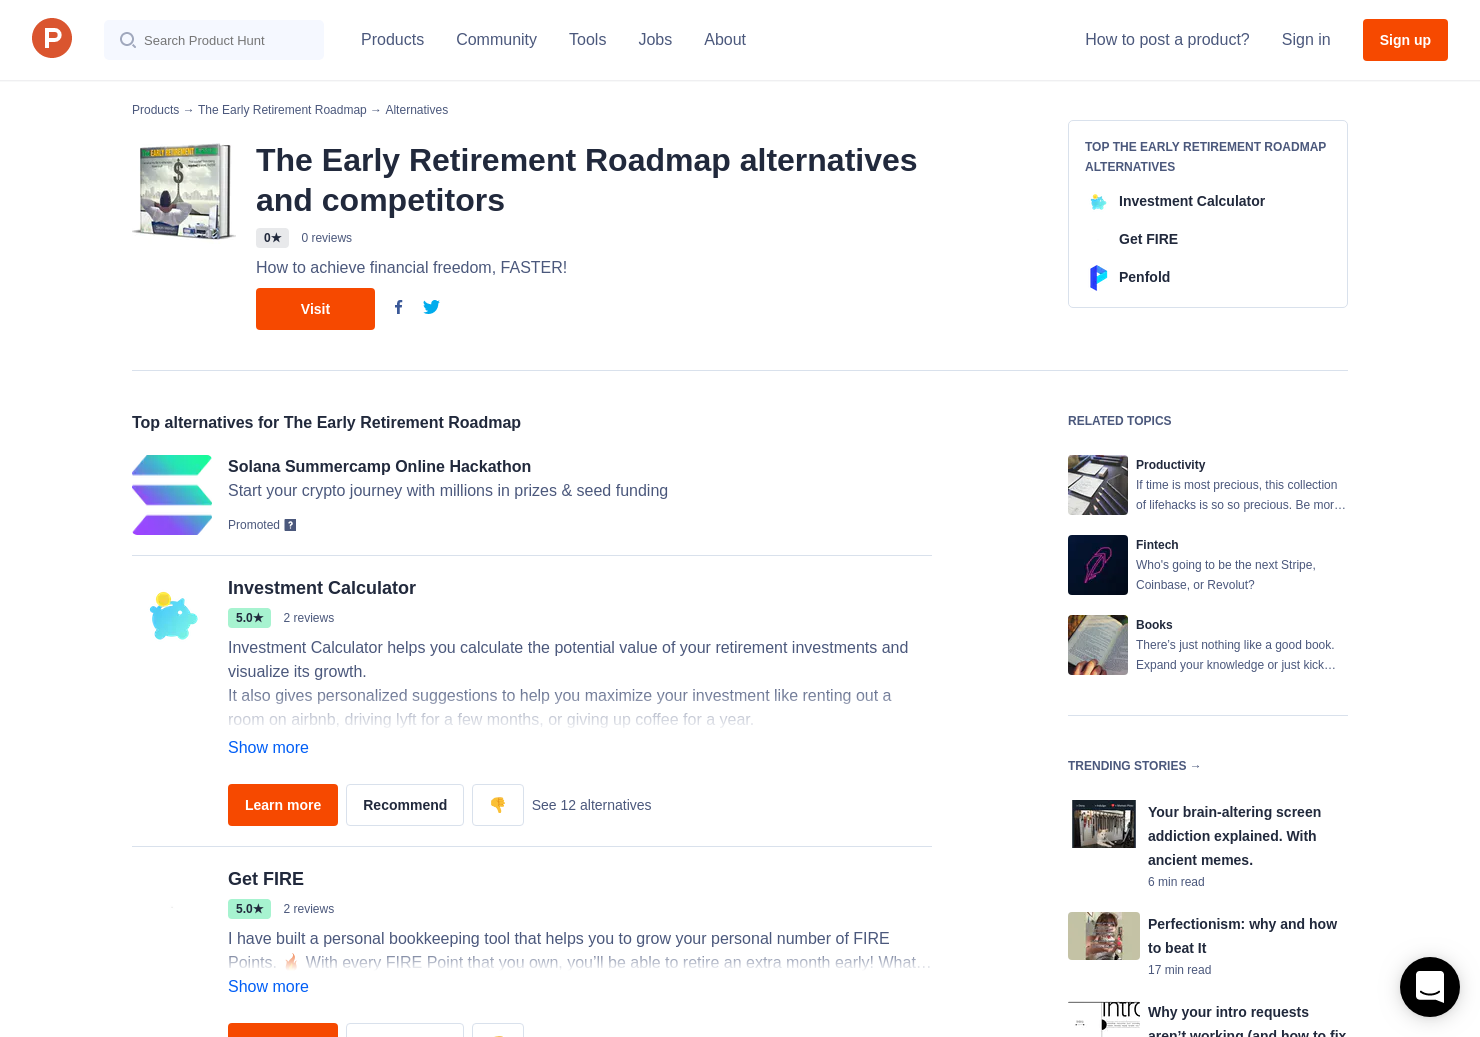 2 Alternatives to The Early Retirement Roadmap | Product Hunt